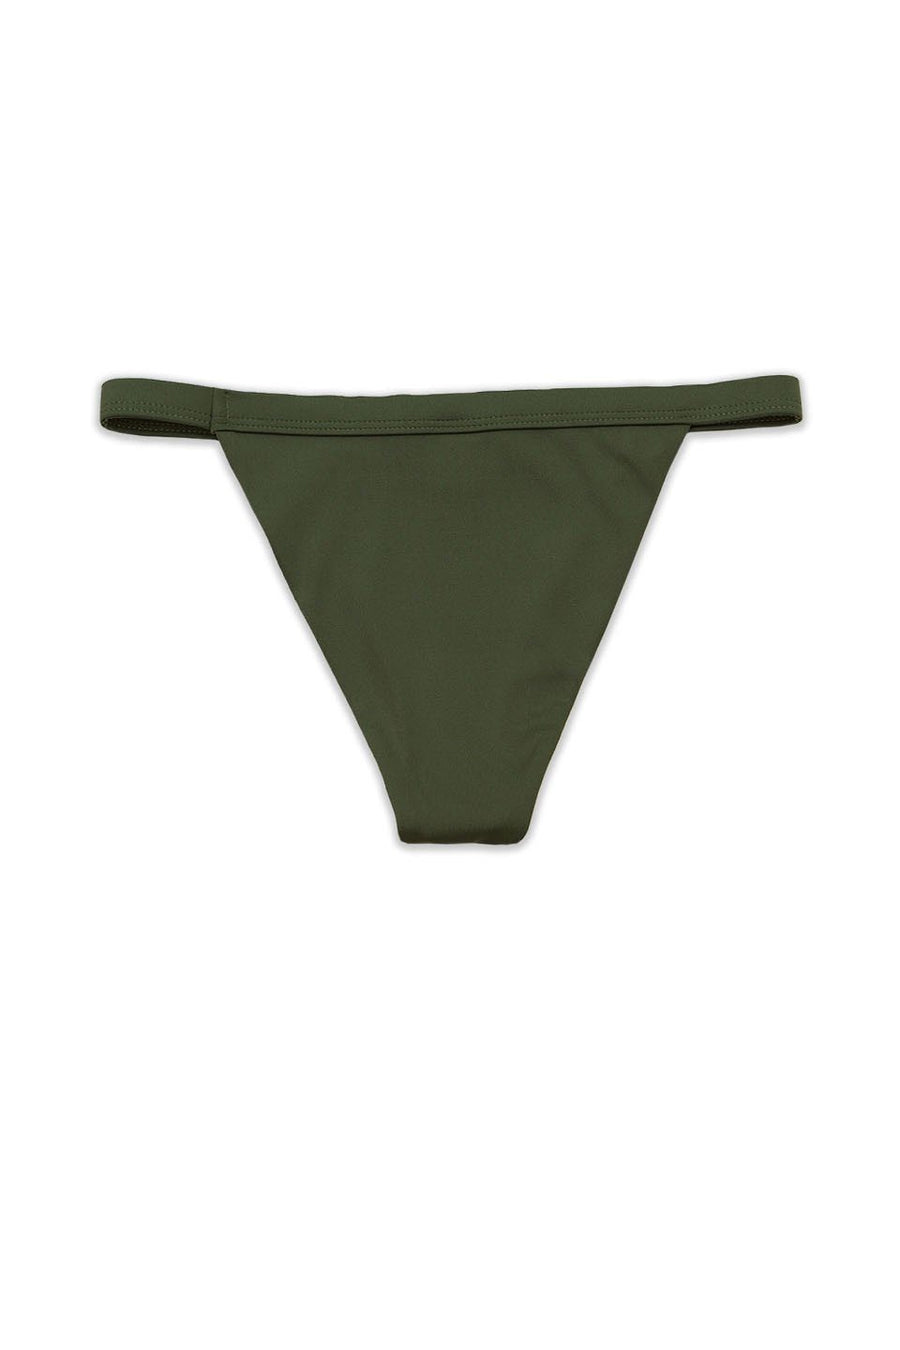 Olive Seamless Fixed Banded Cheeky Bottom - Front - Dippin' Daisy's Swimwear